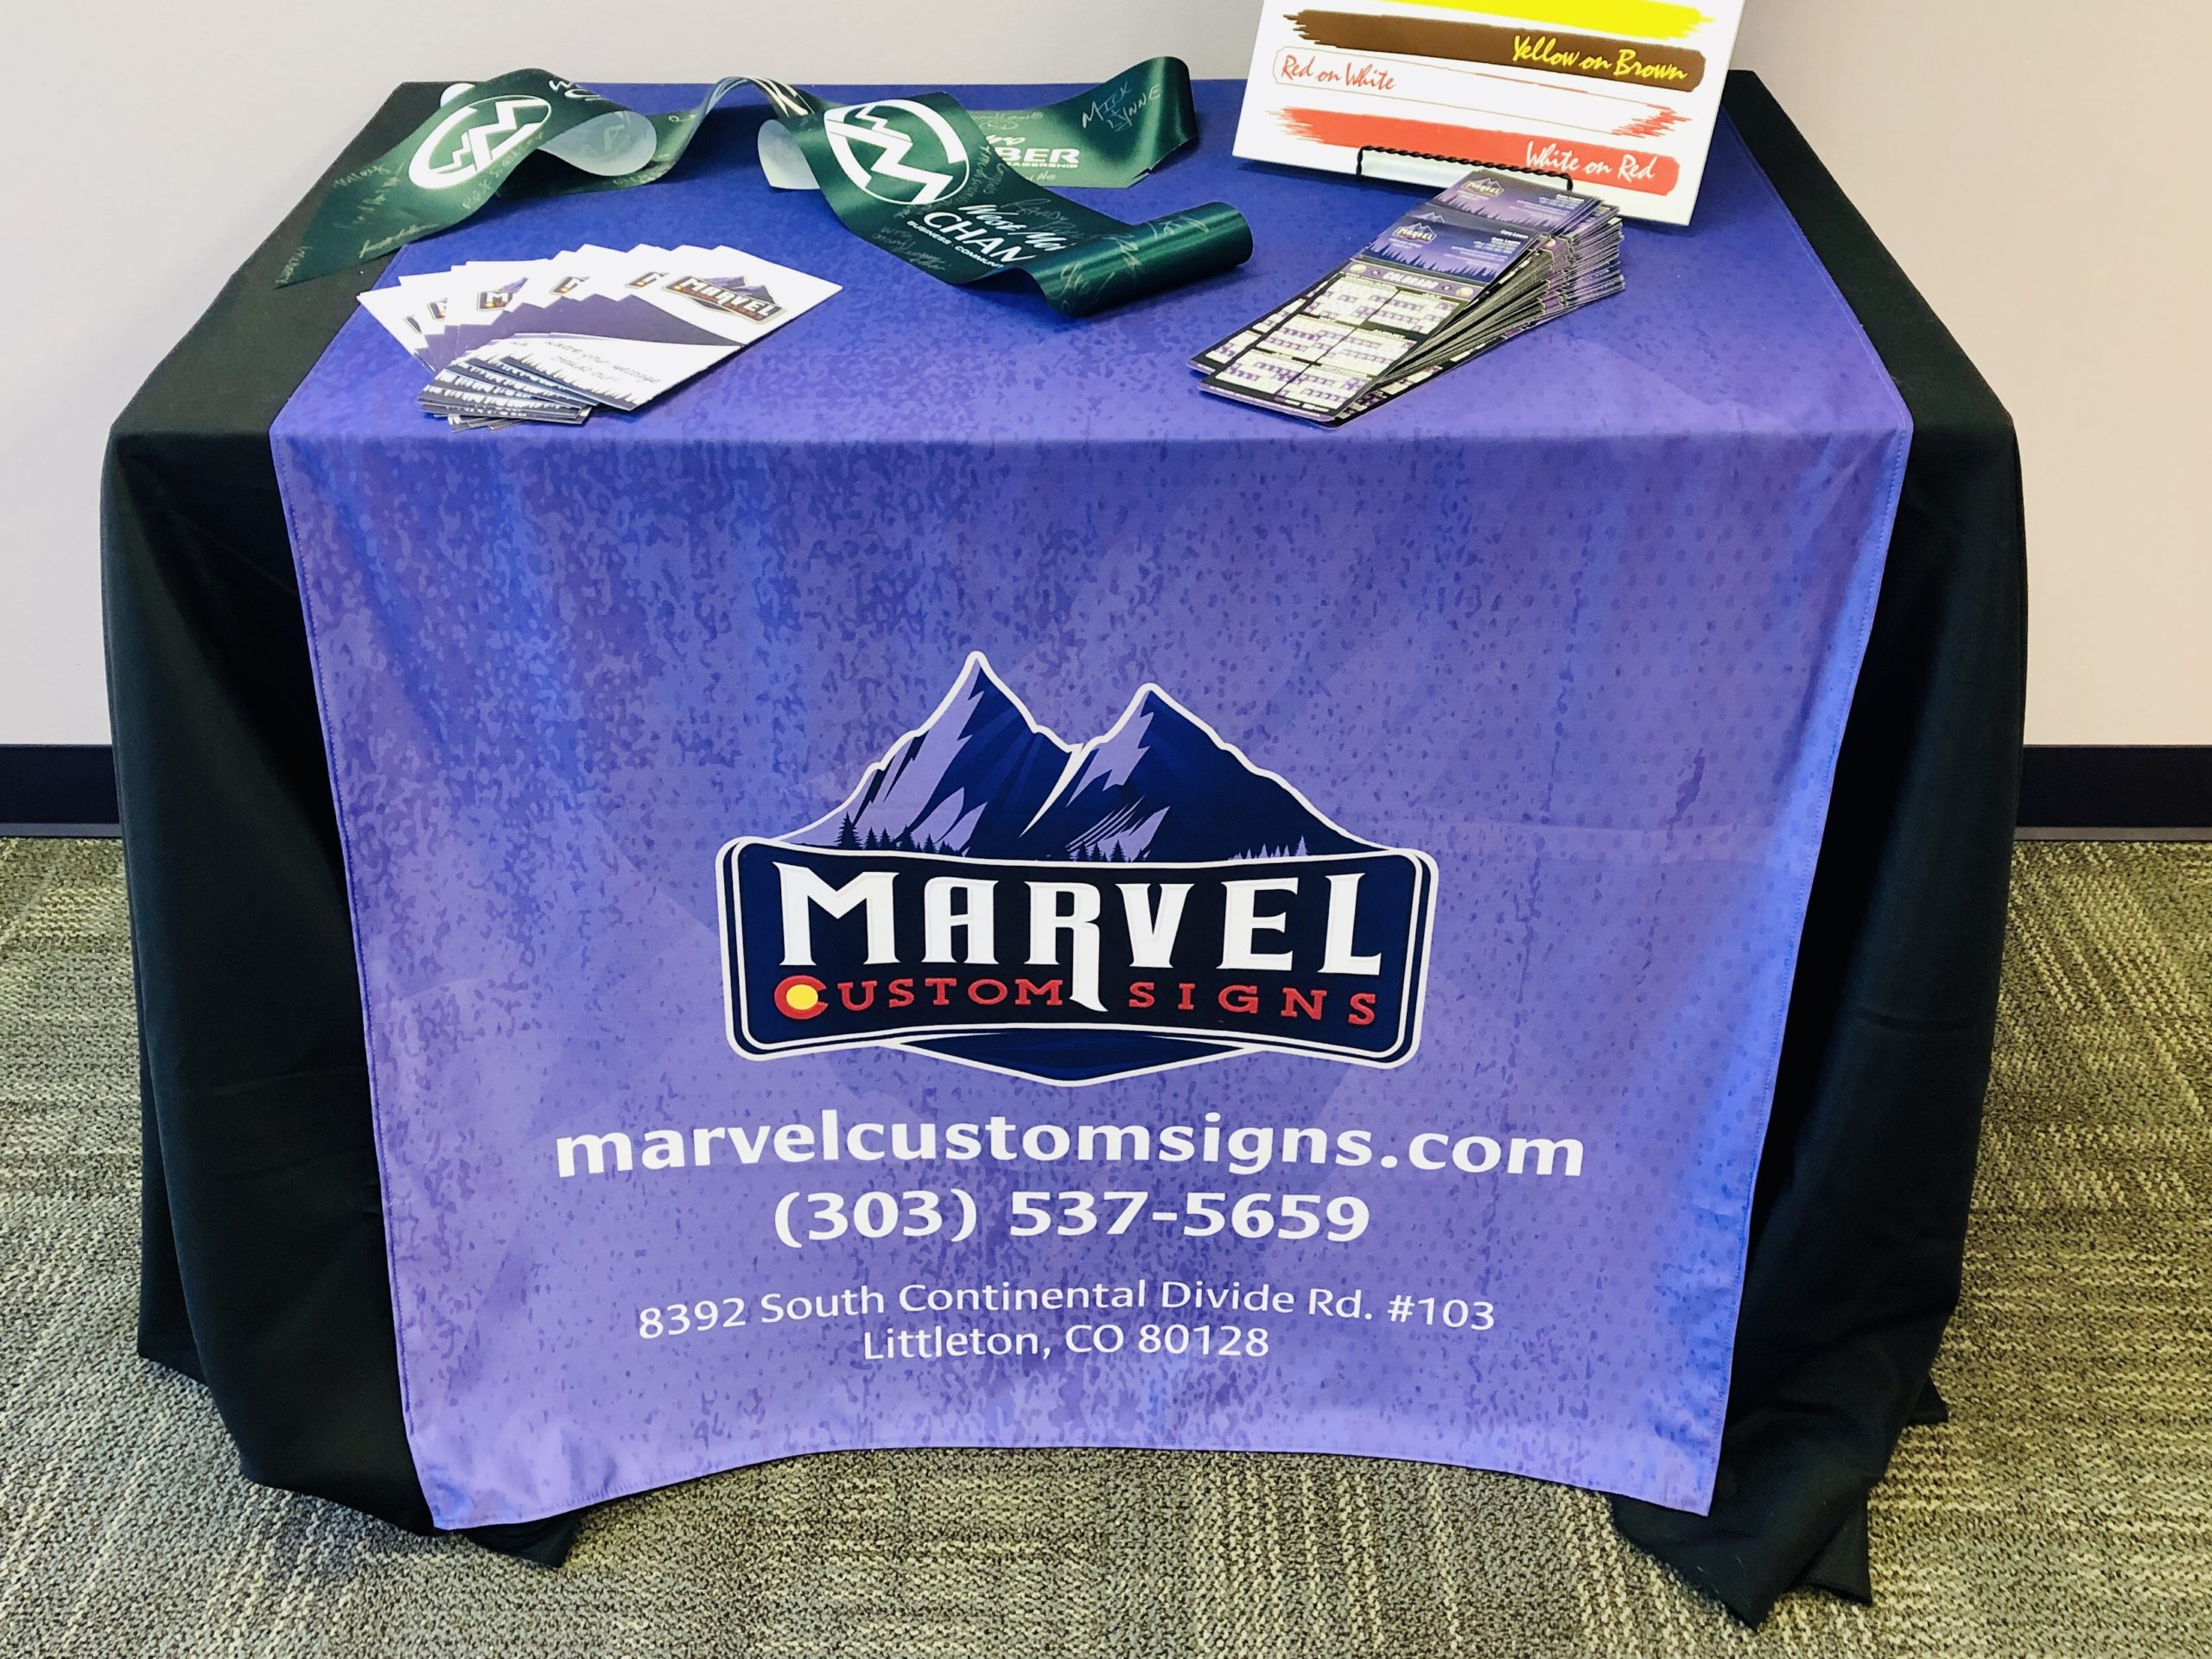 Fabric Signs and Promotional Items Custom Made by Marvel Custom Signs